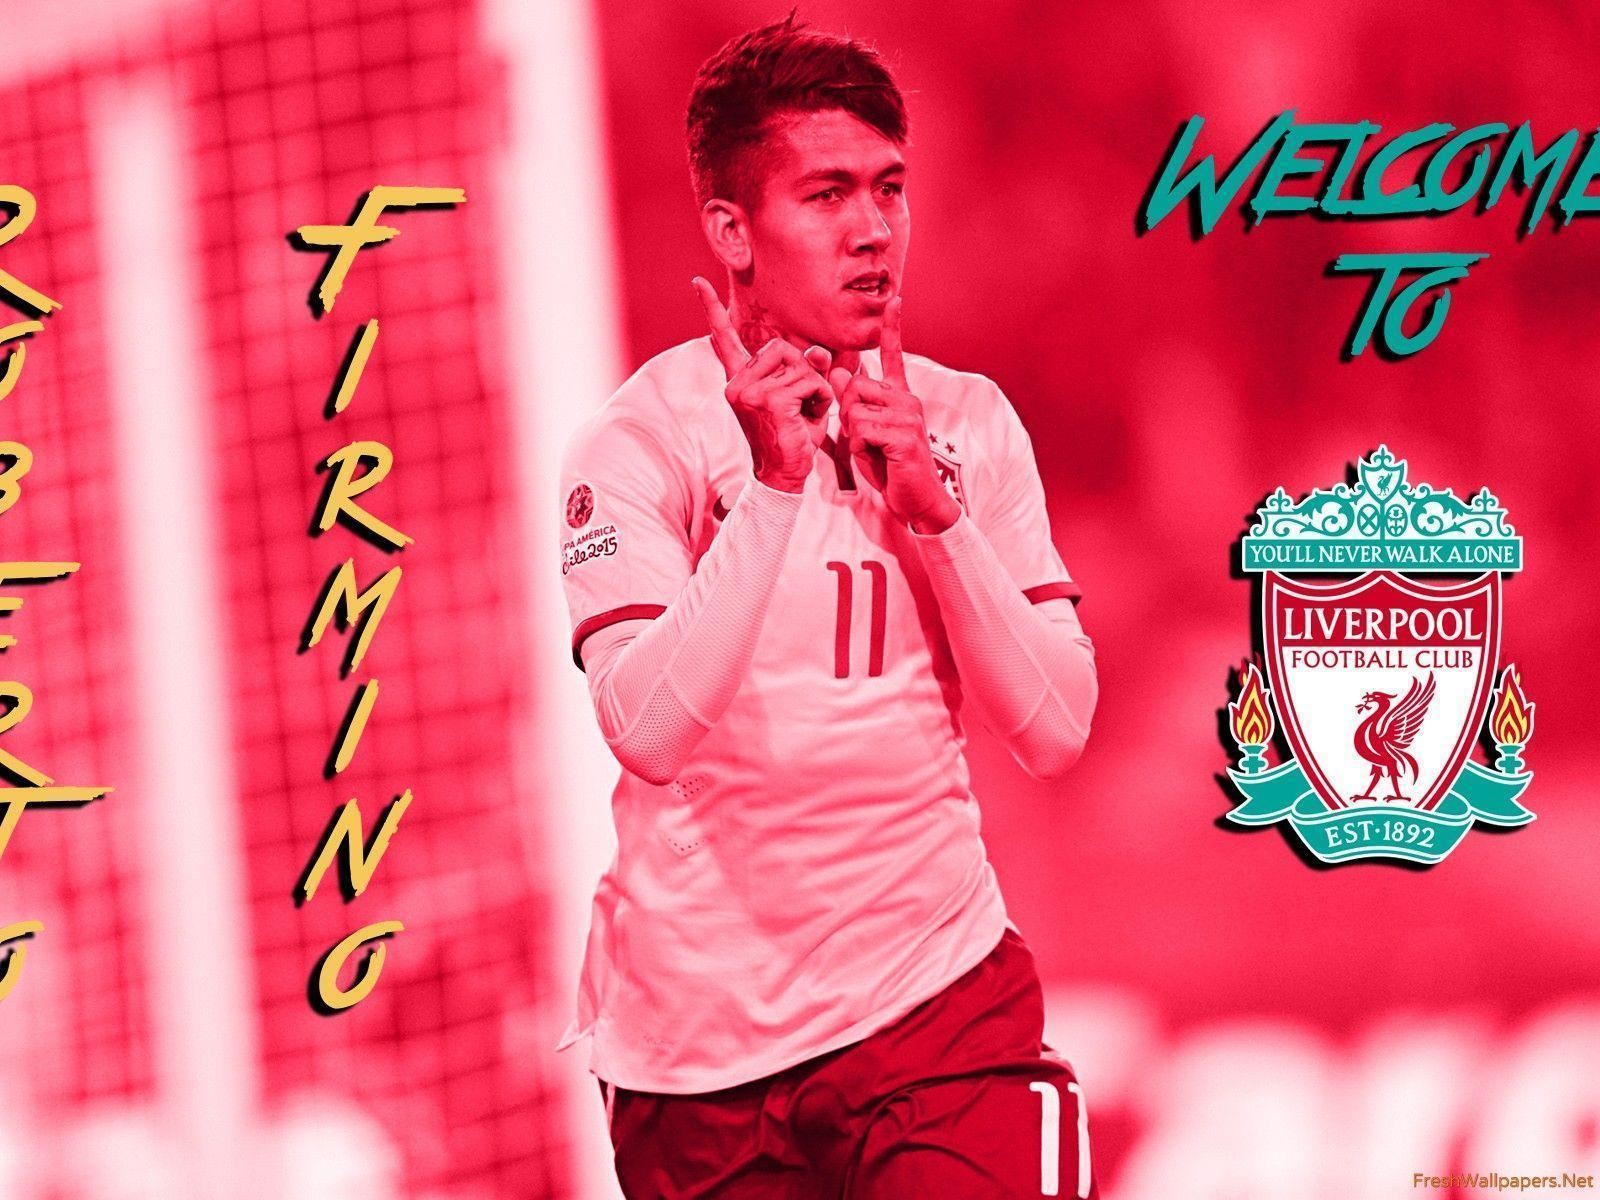 Roberto Firmino 2015 Welcome To Liverpool FC wallpapers